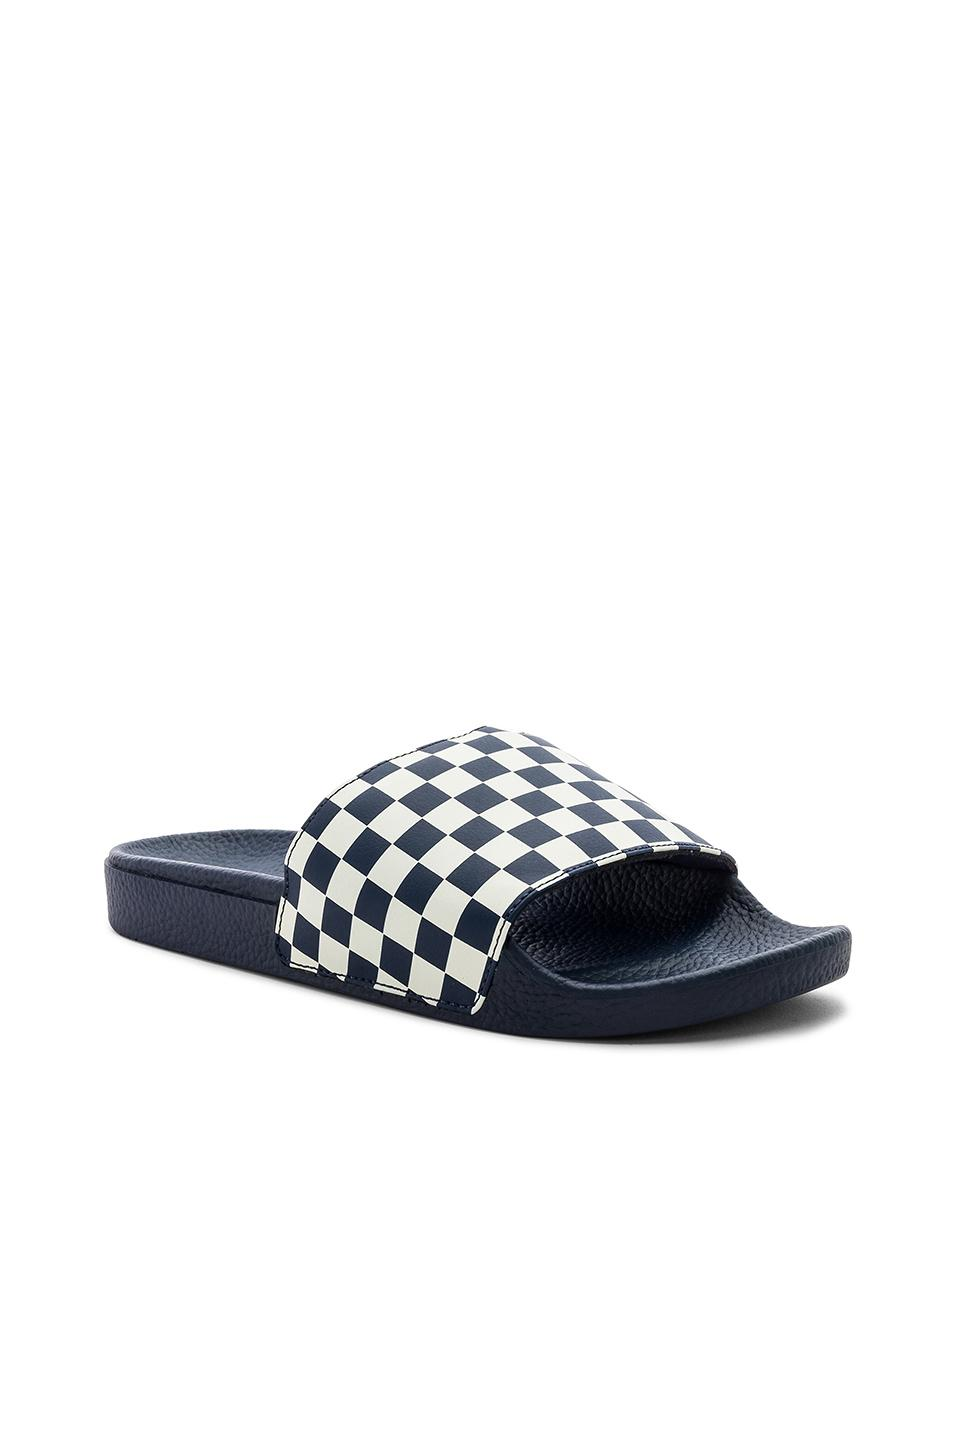 Lyst - Vans Checkerboard Slide-on in Blue for Men 3adf995a6